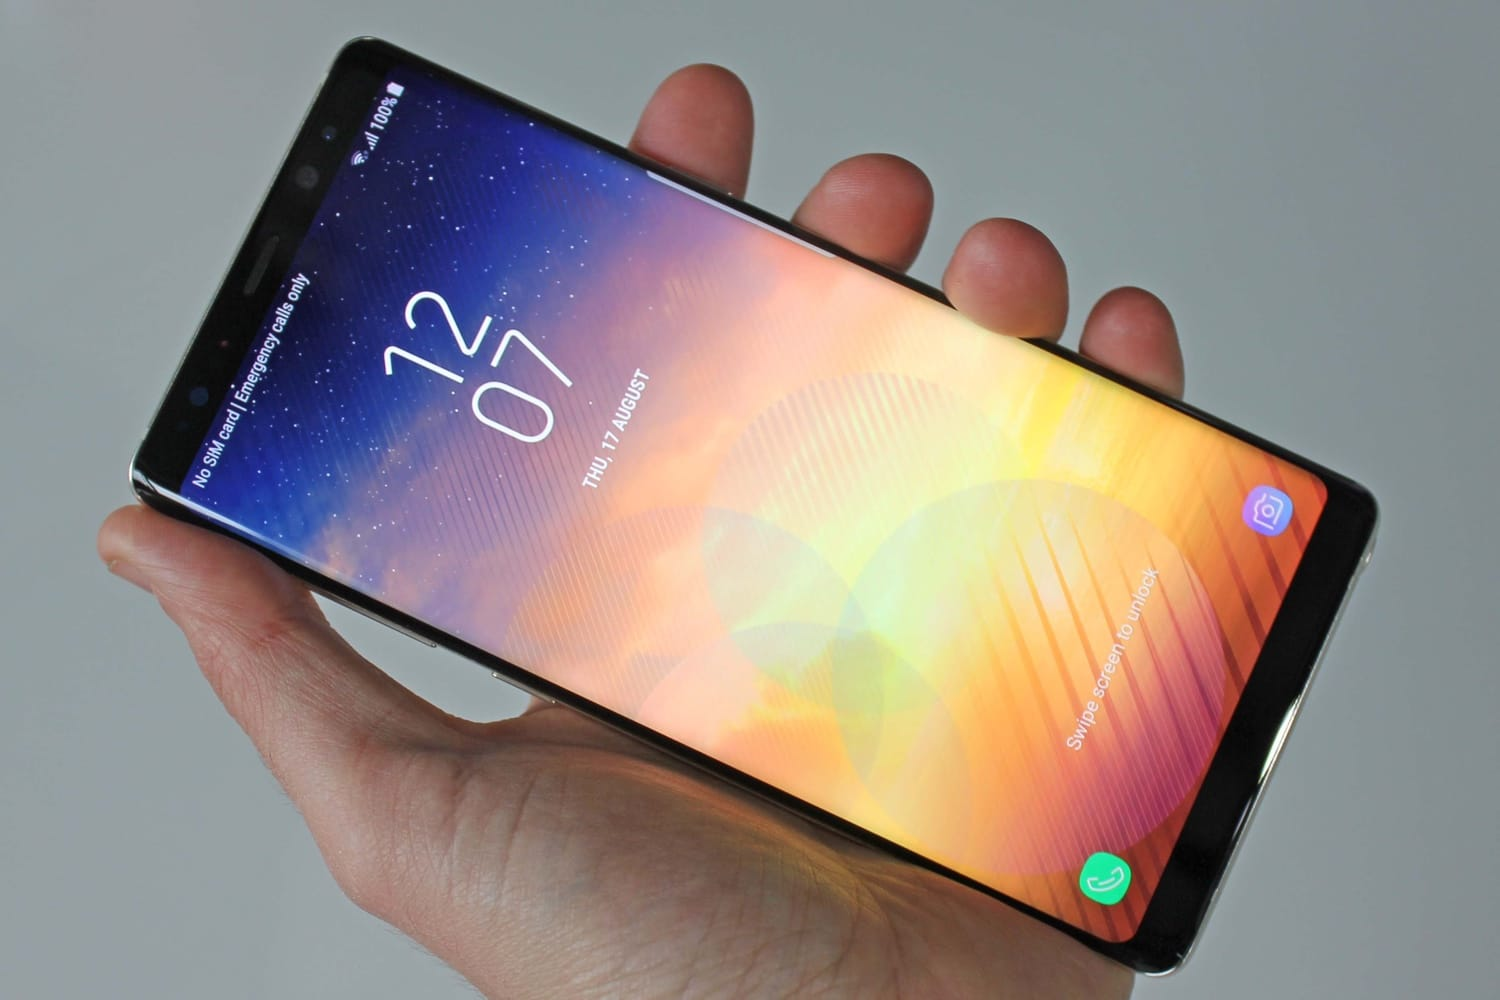 samsung galaxy note 9 iphone x. Black Bedroom Furniture Sets. Home Design Ideas